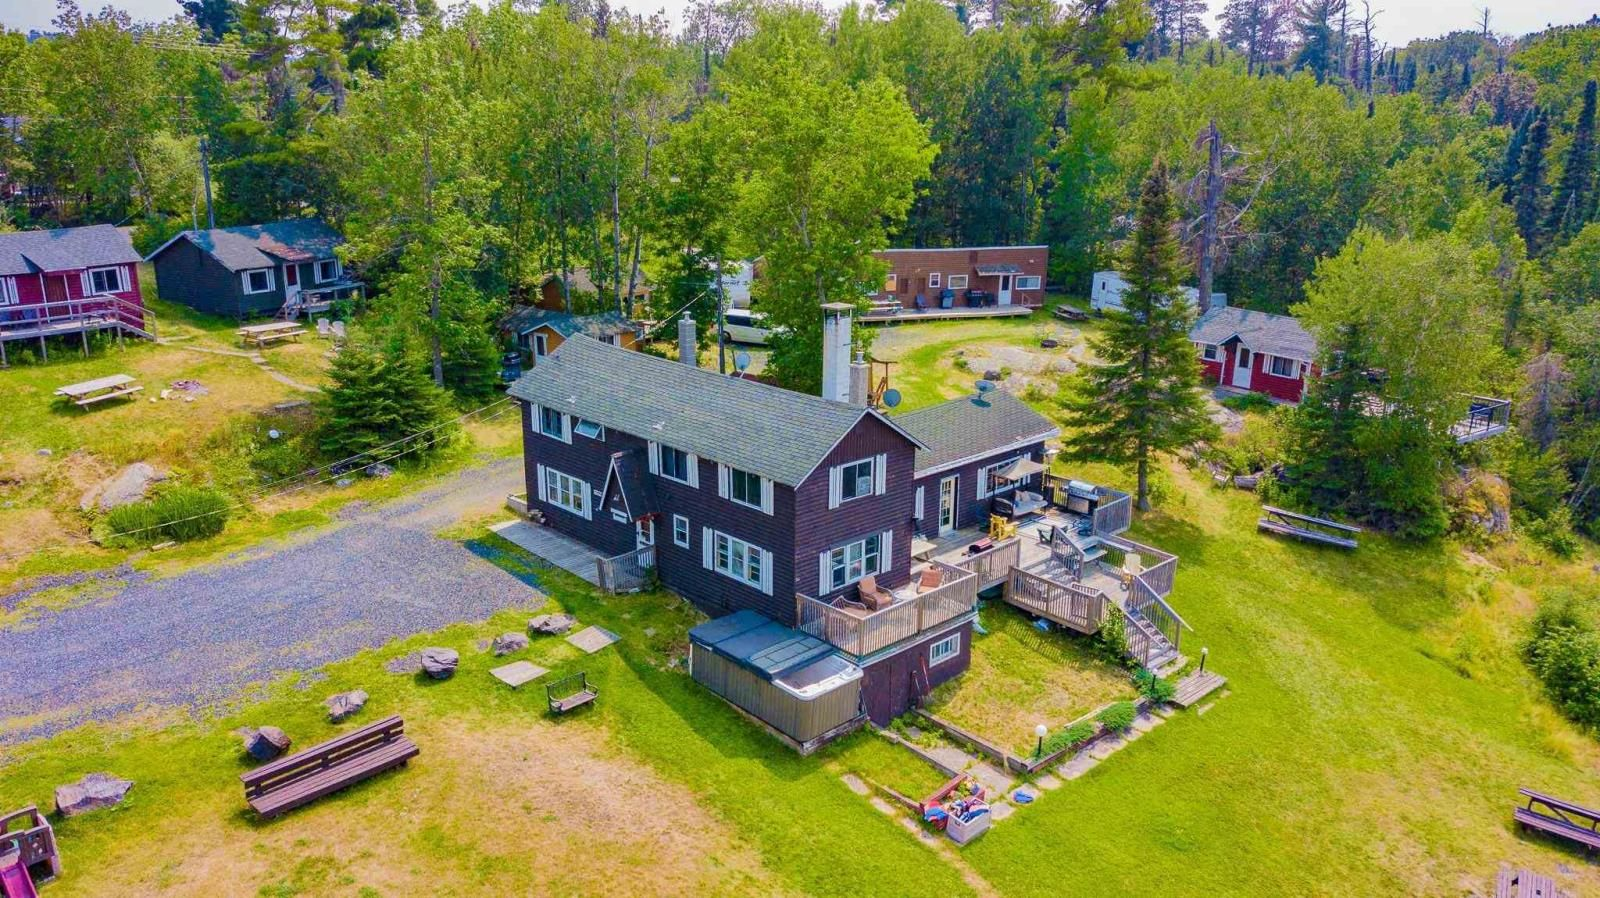 Main Photo: 24 McKenzie Portage road in South of Keewatin: House for sale : MLS®# TB212965